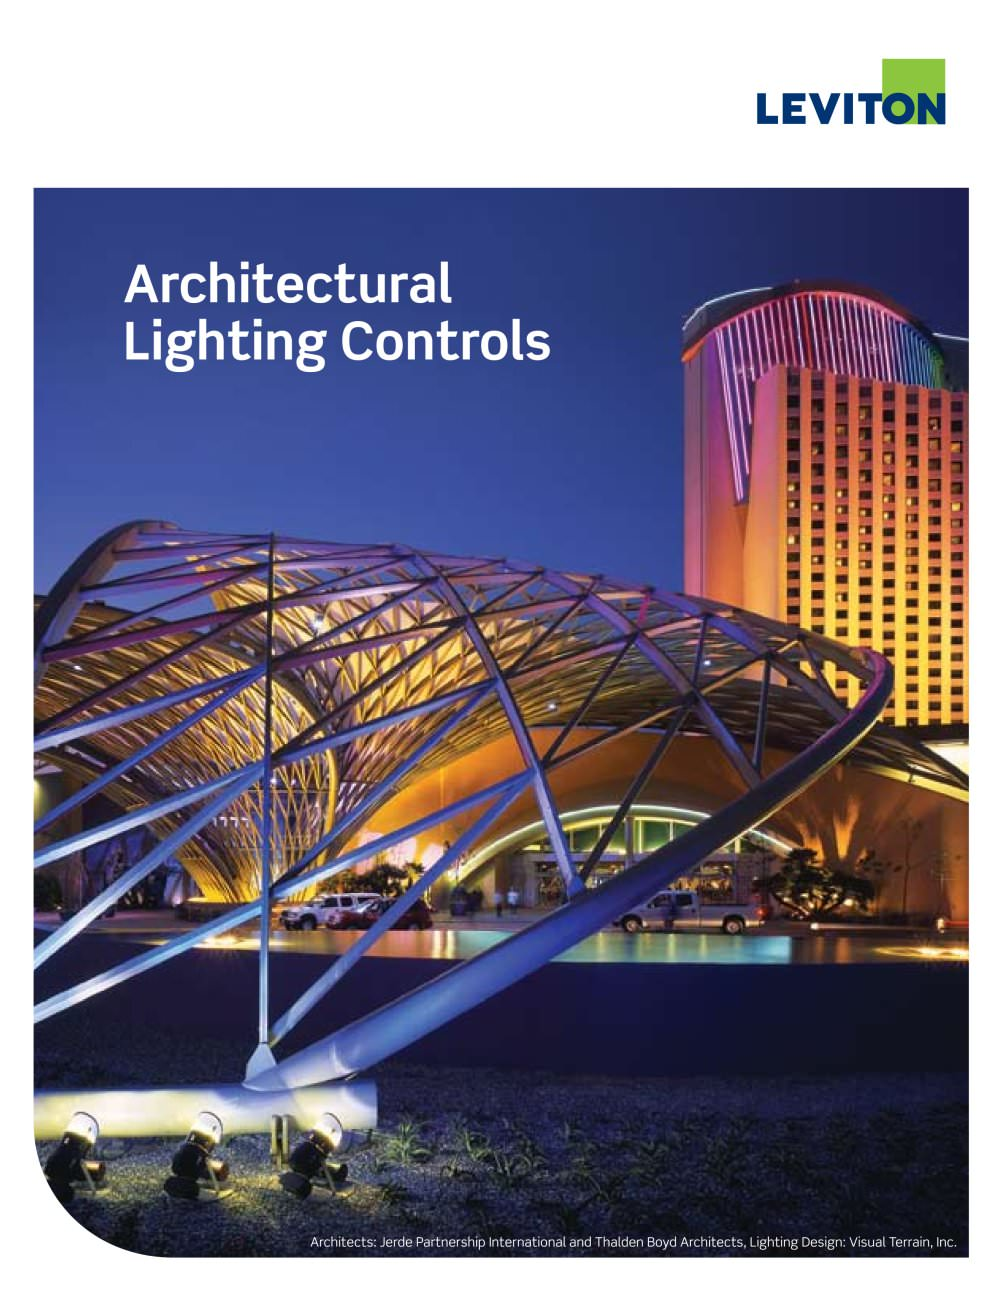 Commercial Architectural Lighting Controls Catalog - 1 / 21 Pages  sc 1 st  Catalogues Archiexpo & Commercial Architectural Lighting Controls Catalog - LEVITON ...